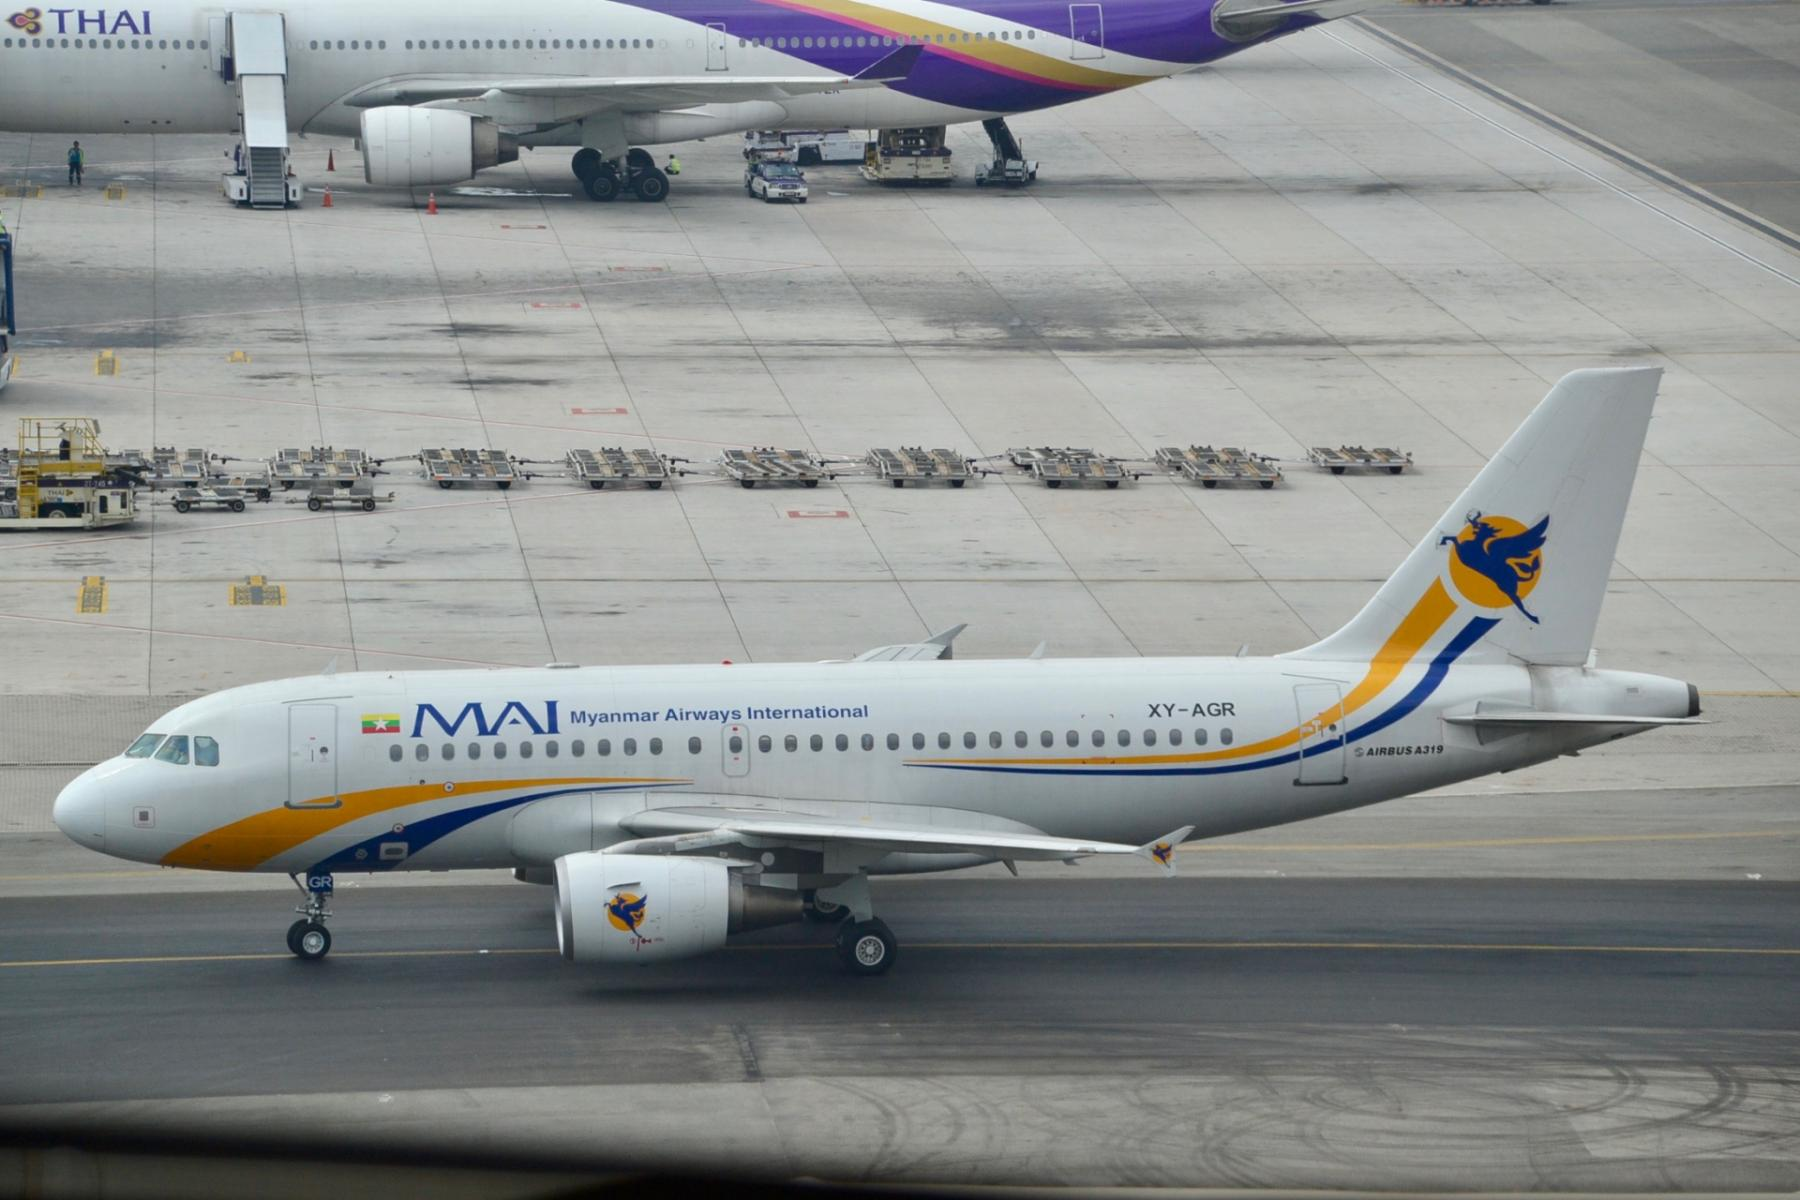 An Airbus A319 acquired by Myanmar's military from a domestic airline on the runway in Bangkok in 2014 CREDIT: Alec Wilson/Creative Commons